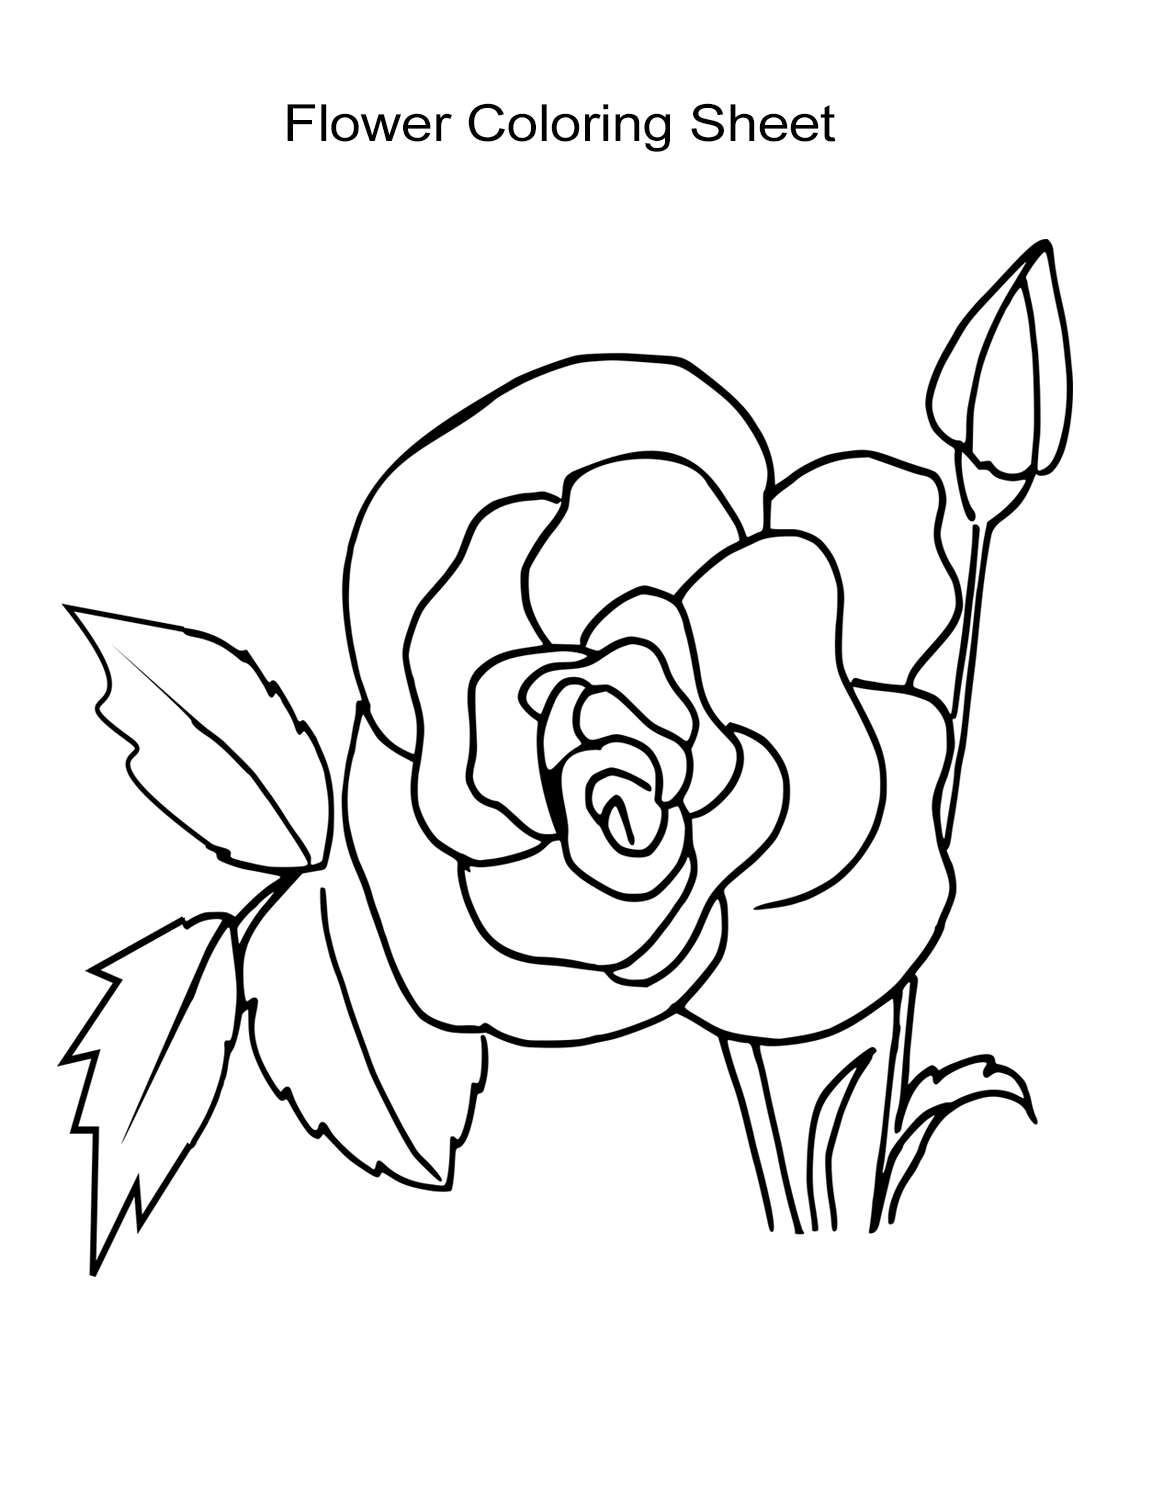 flower coloring page flower coloring pages part 3 flower page coloring